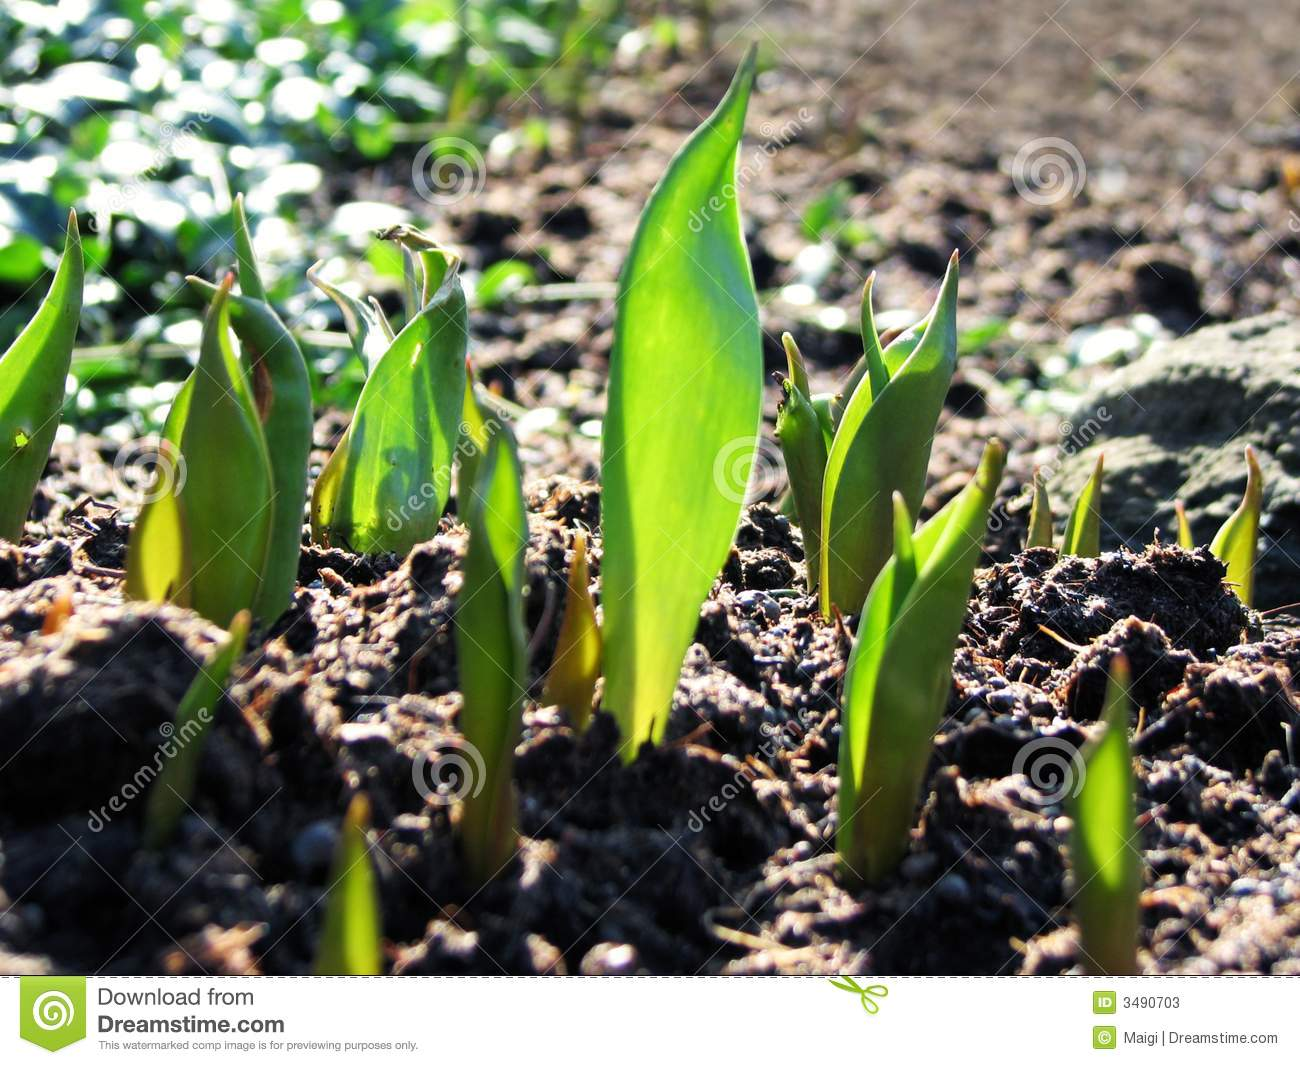 Young Tulip Plants Growing Stock Photos Image 3490703